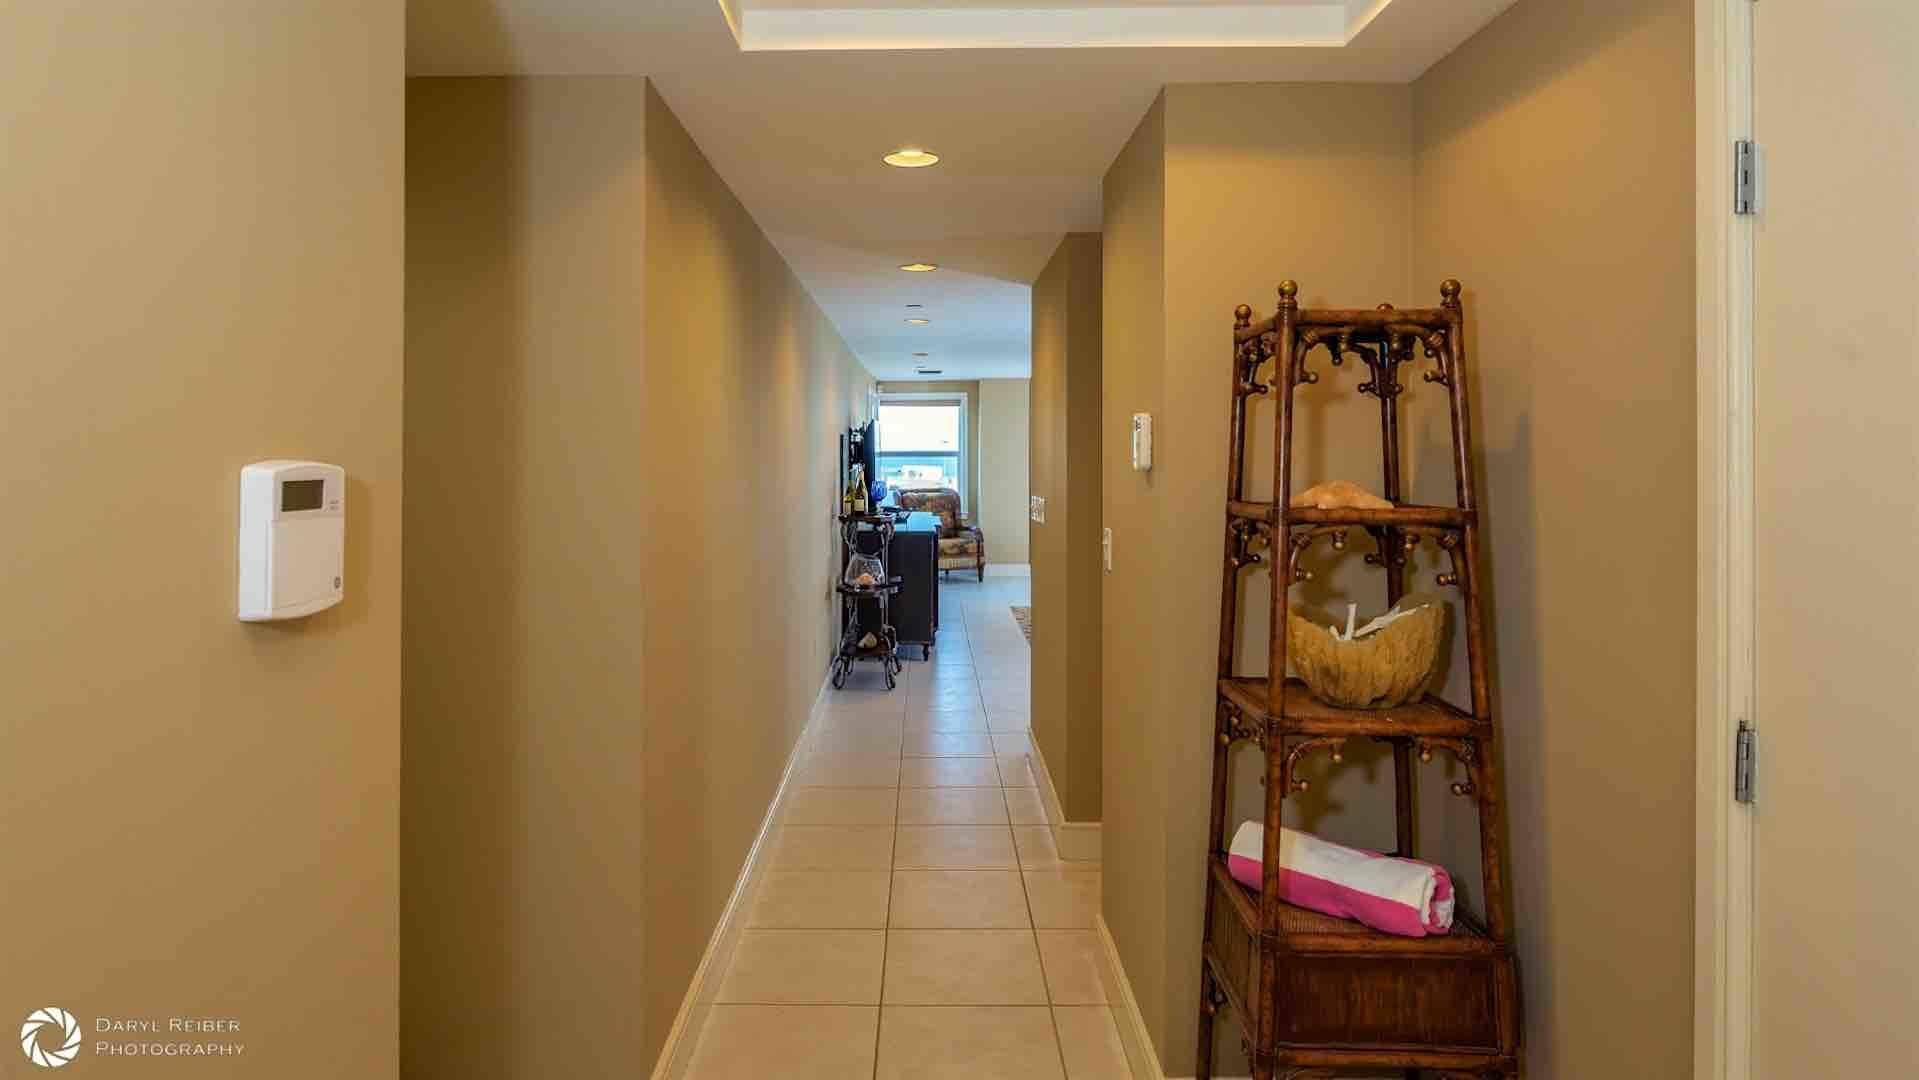 Both bedrooms are located down the hall, separate from the living area...